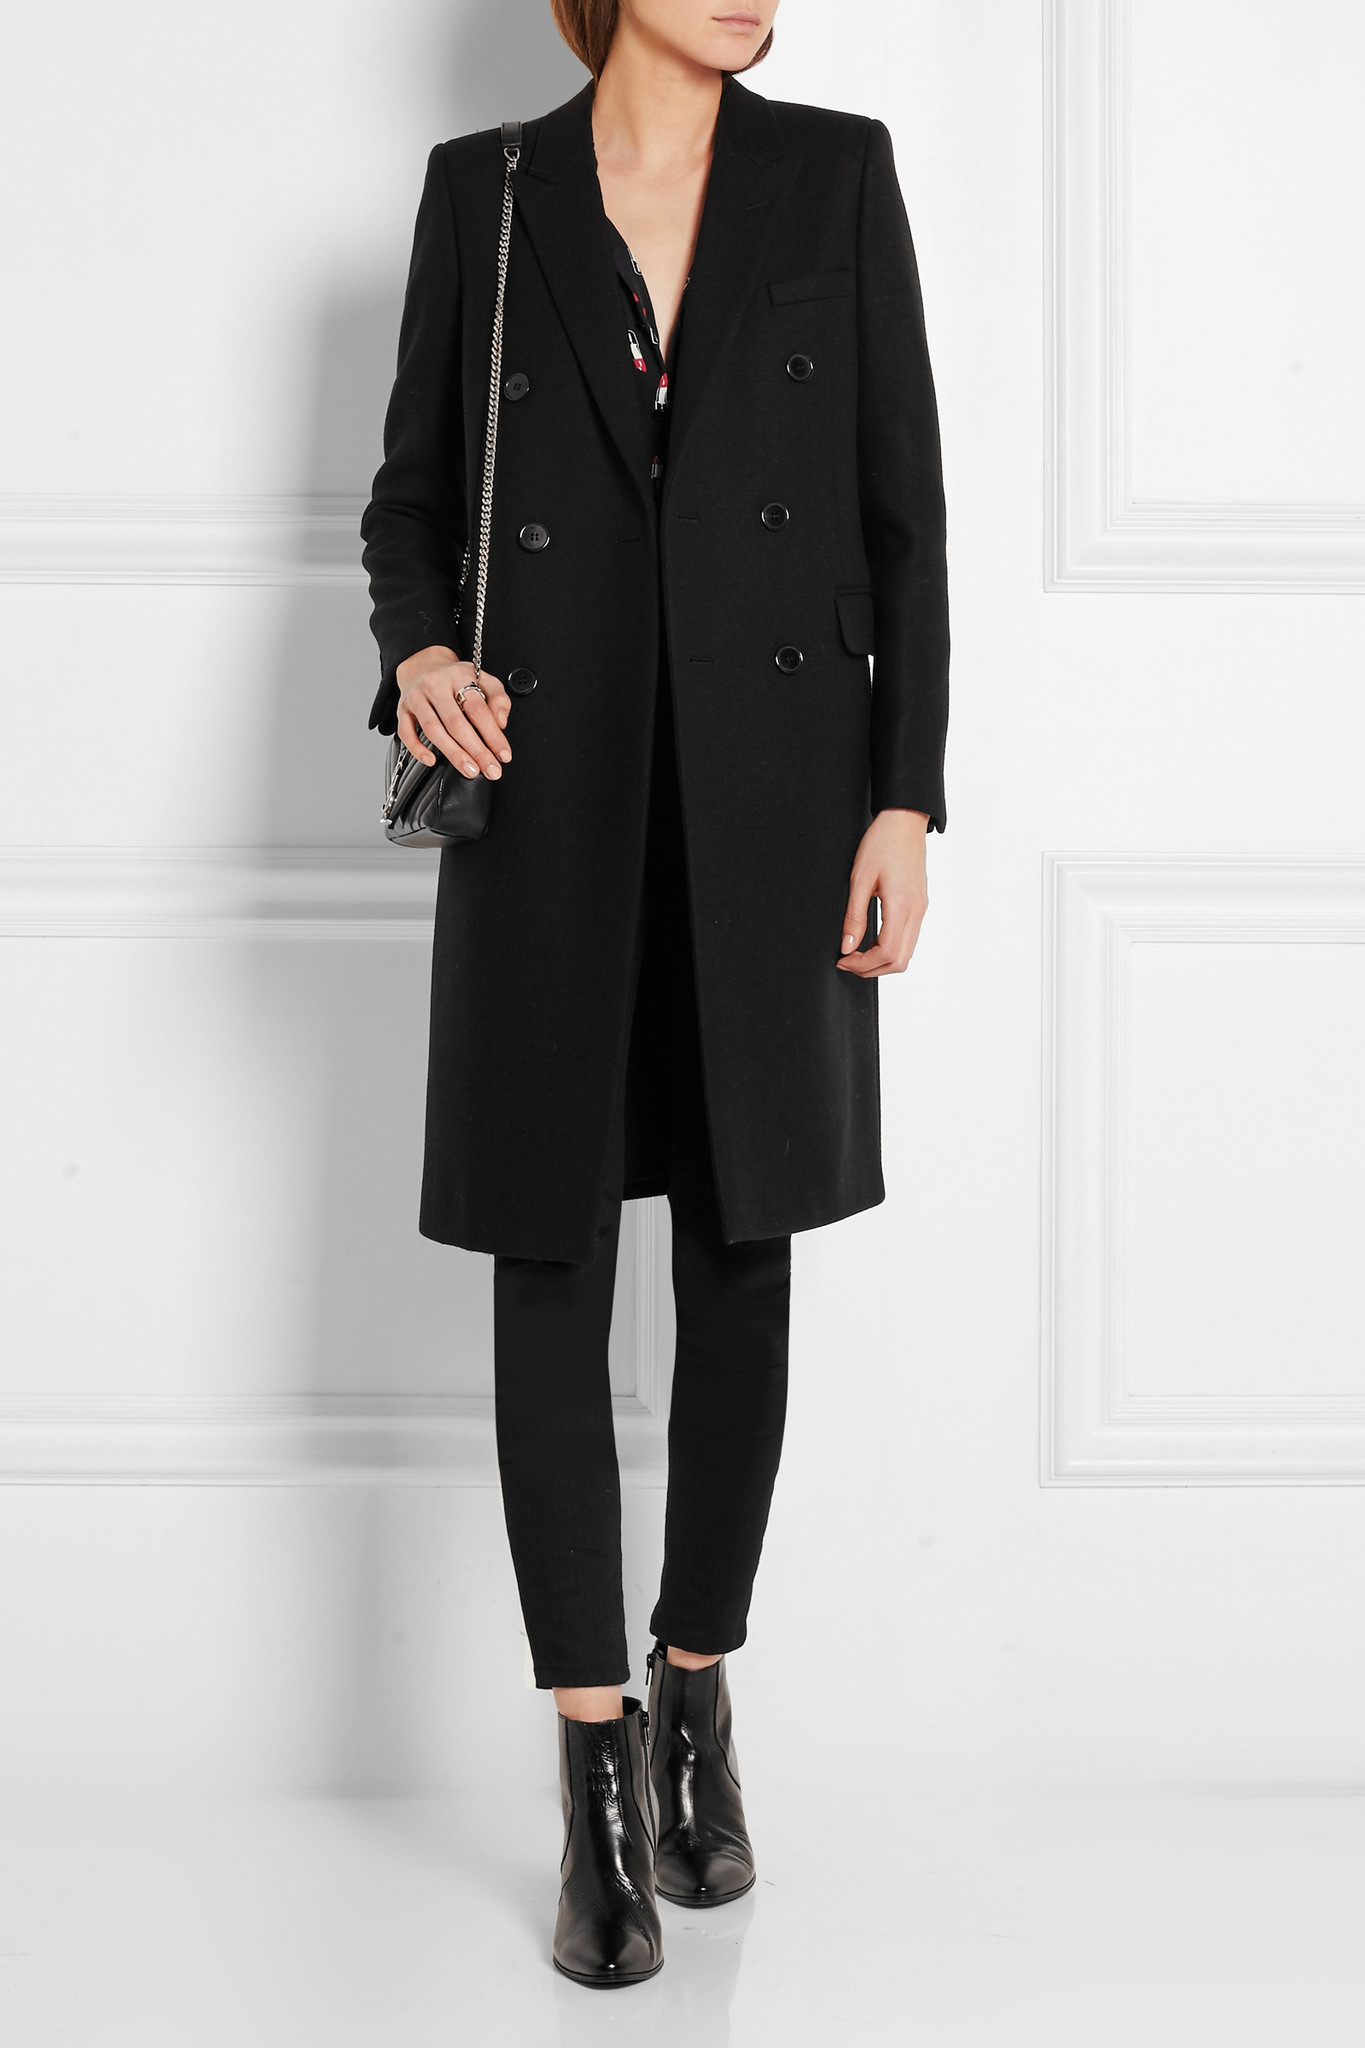 Laurent Wool Saint Black Double Overcoat Breasted WOzExaEqSX